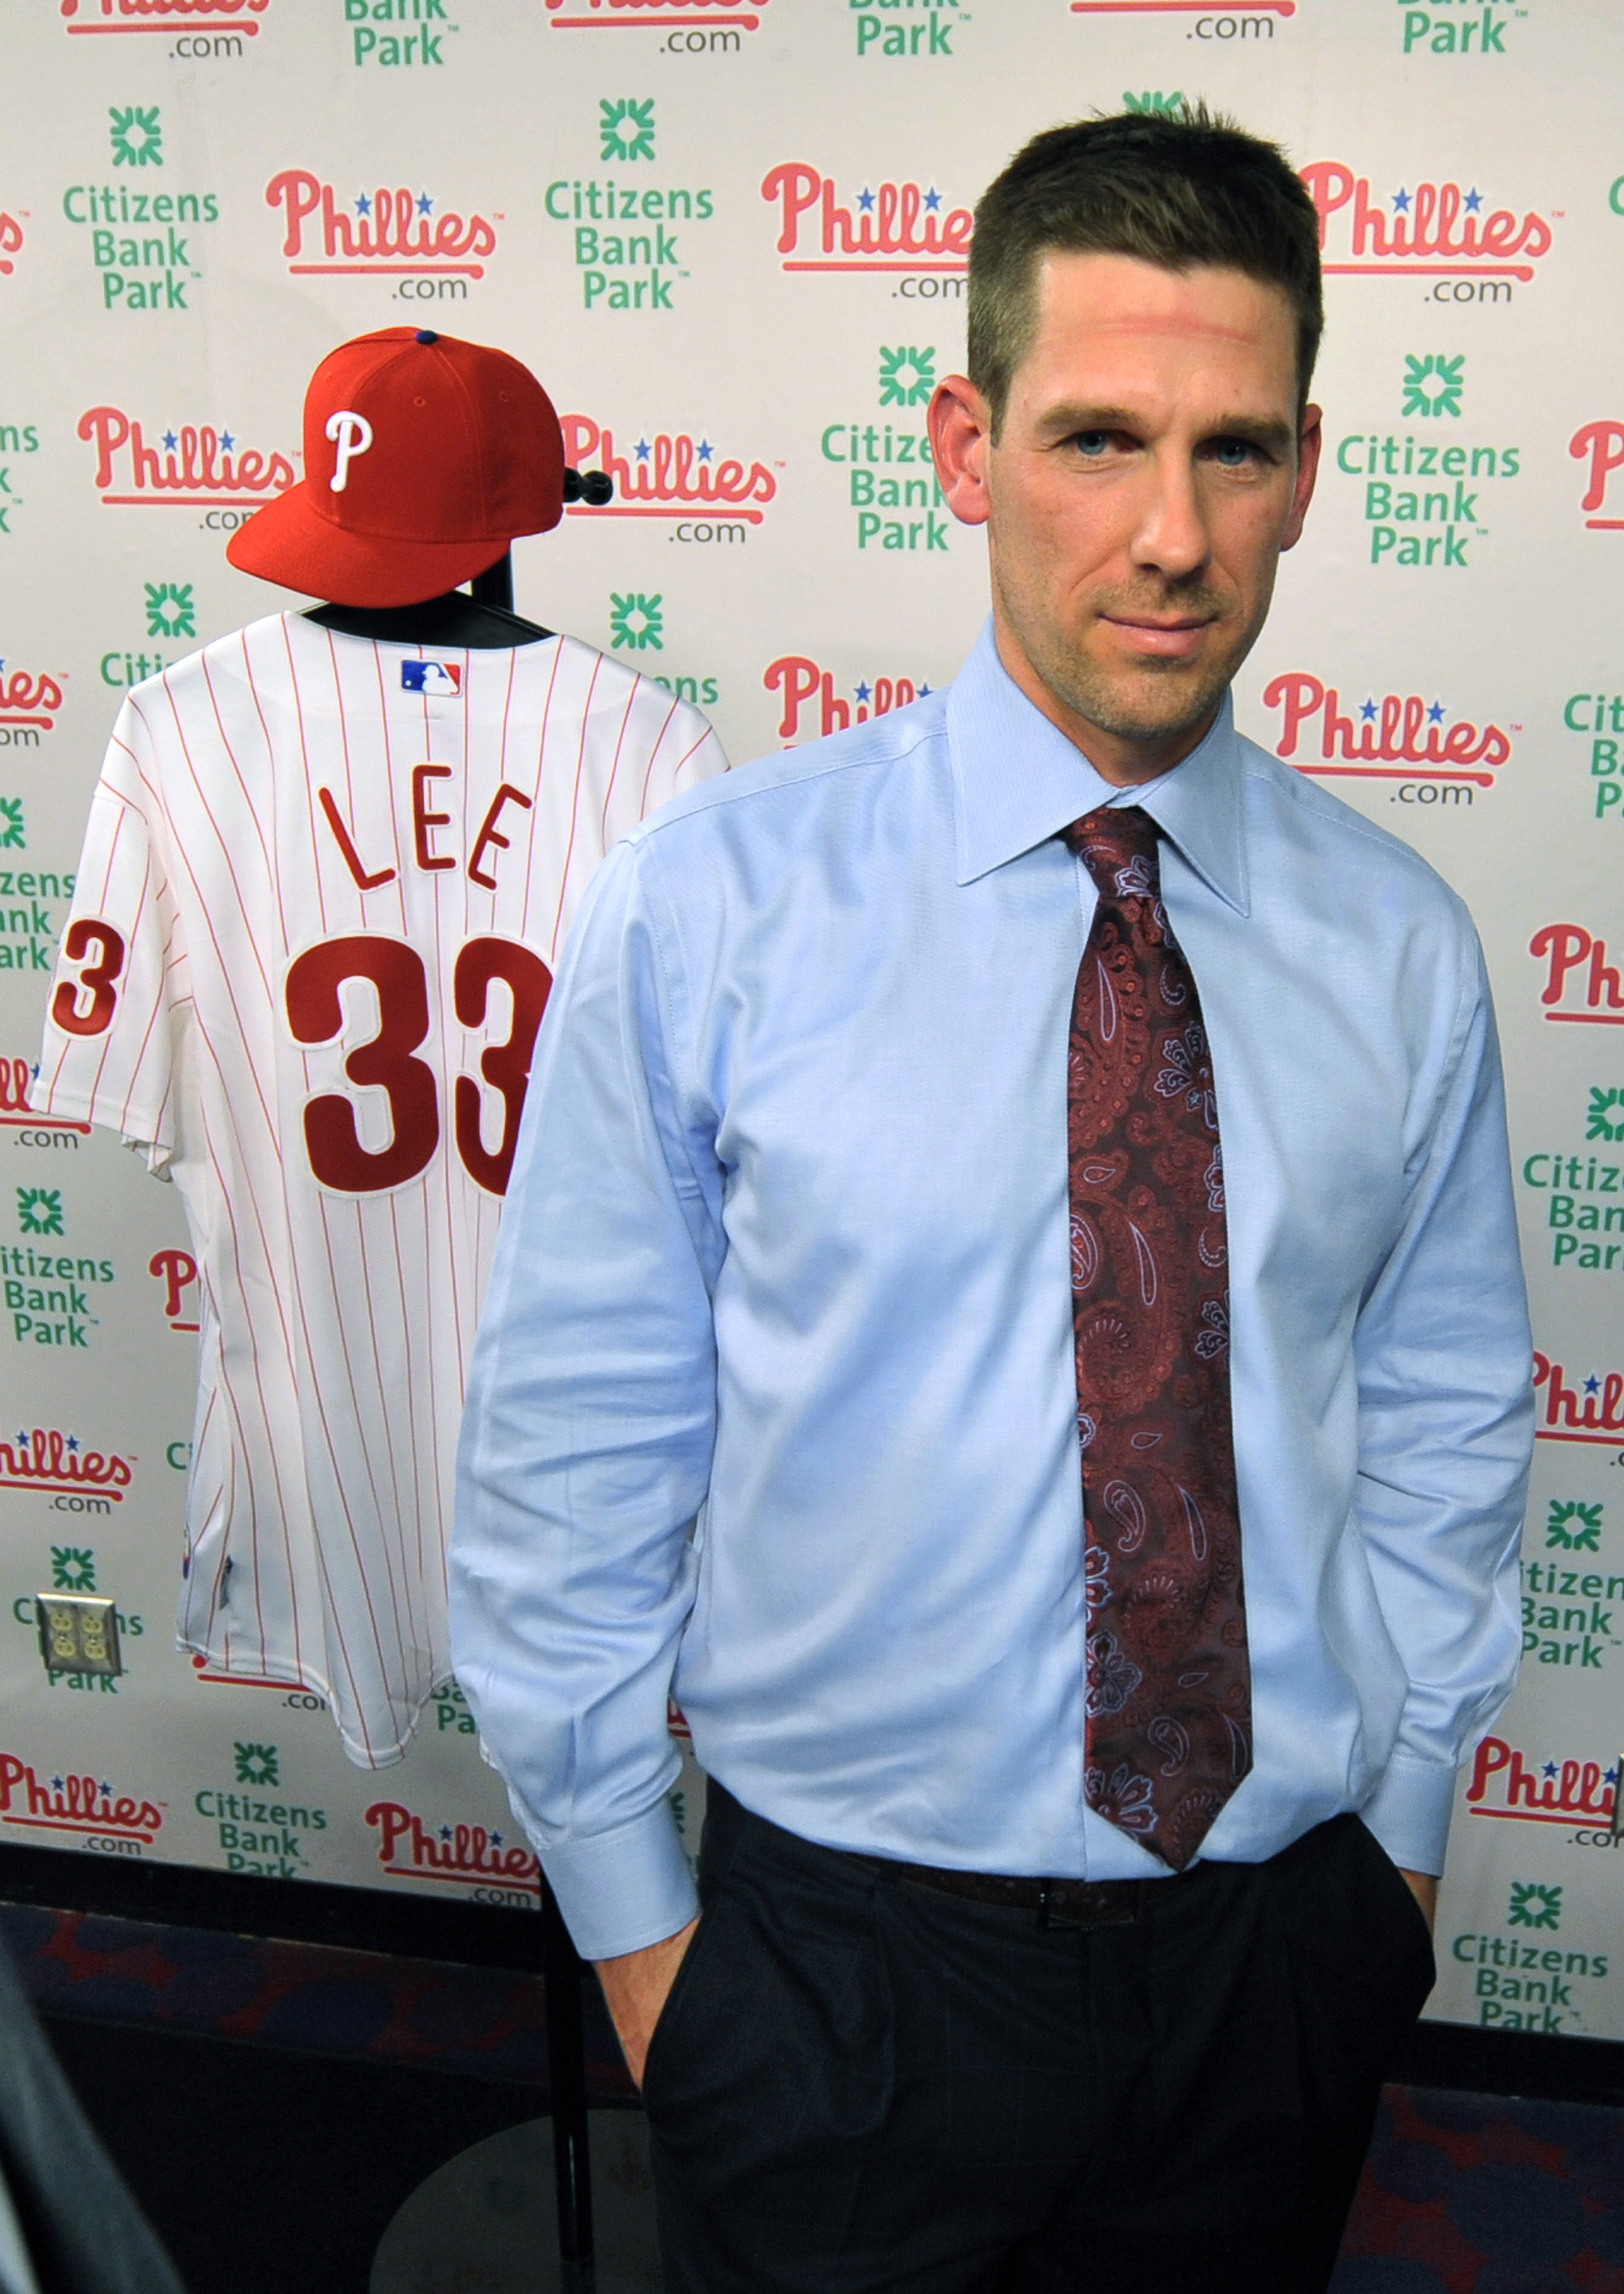 PHILADELPHIA - DECEMBER 15: Pitcher Cliff Lee #33 of the Philadelphia Phillies waits to be interviewed after being introduced to the media during a press conference at Citizens Bank Park on December 15, 2010 in Philadelphia, Pennsylvania. (Photo by Drew H